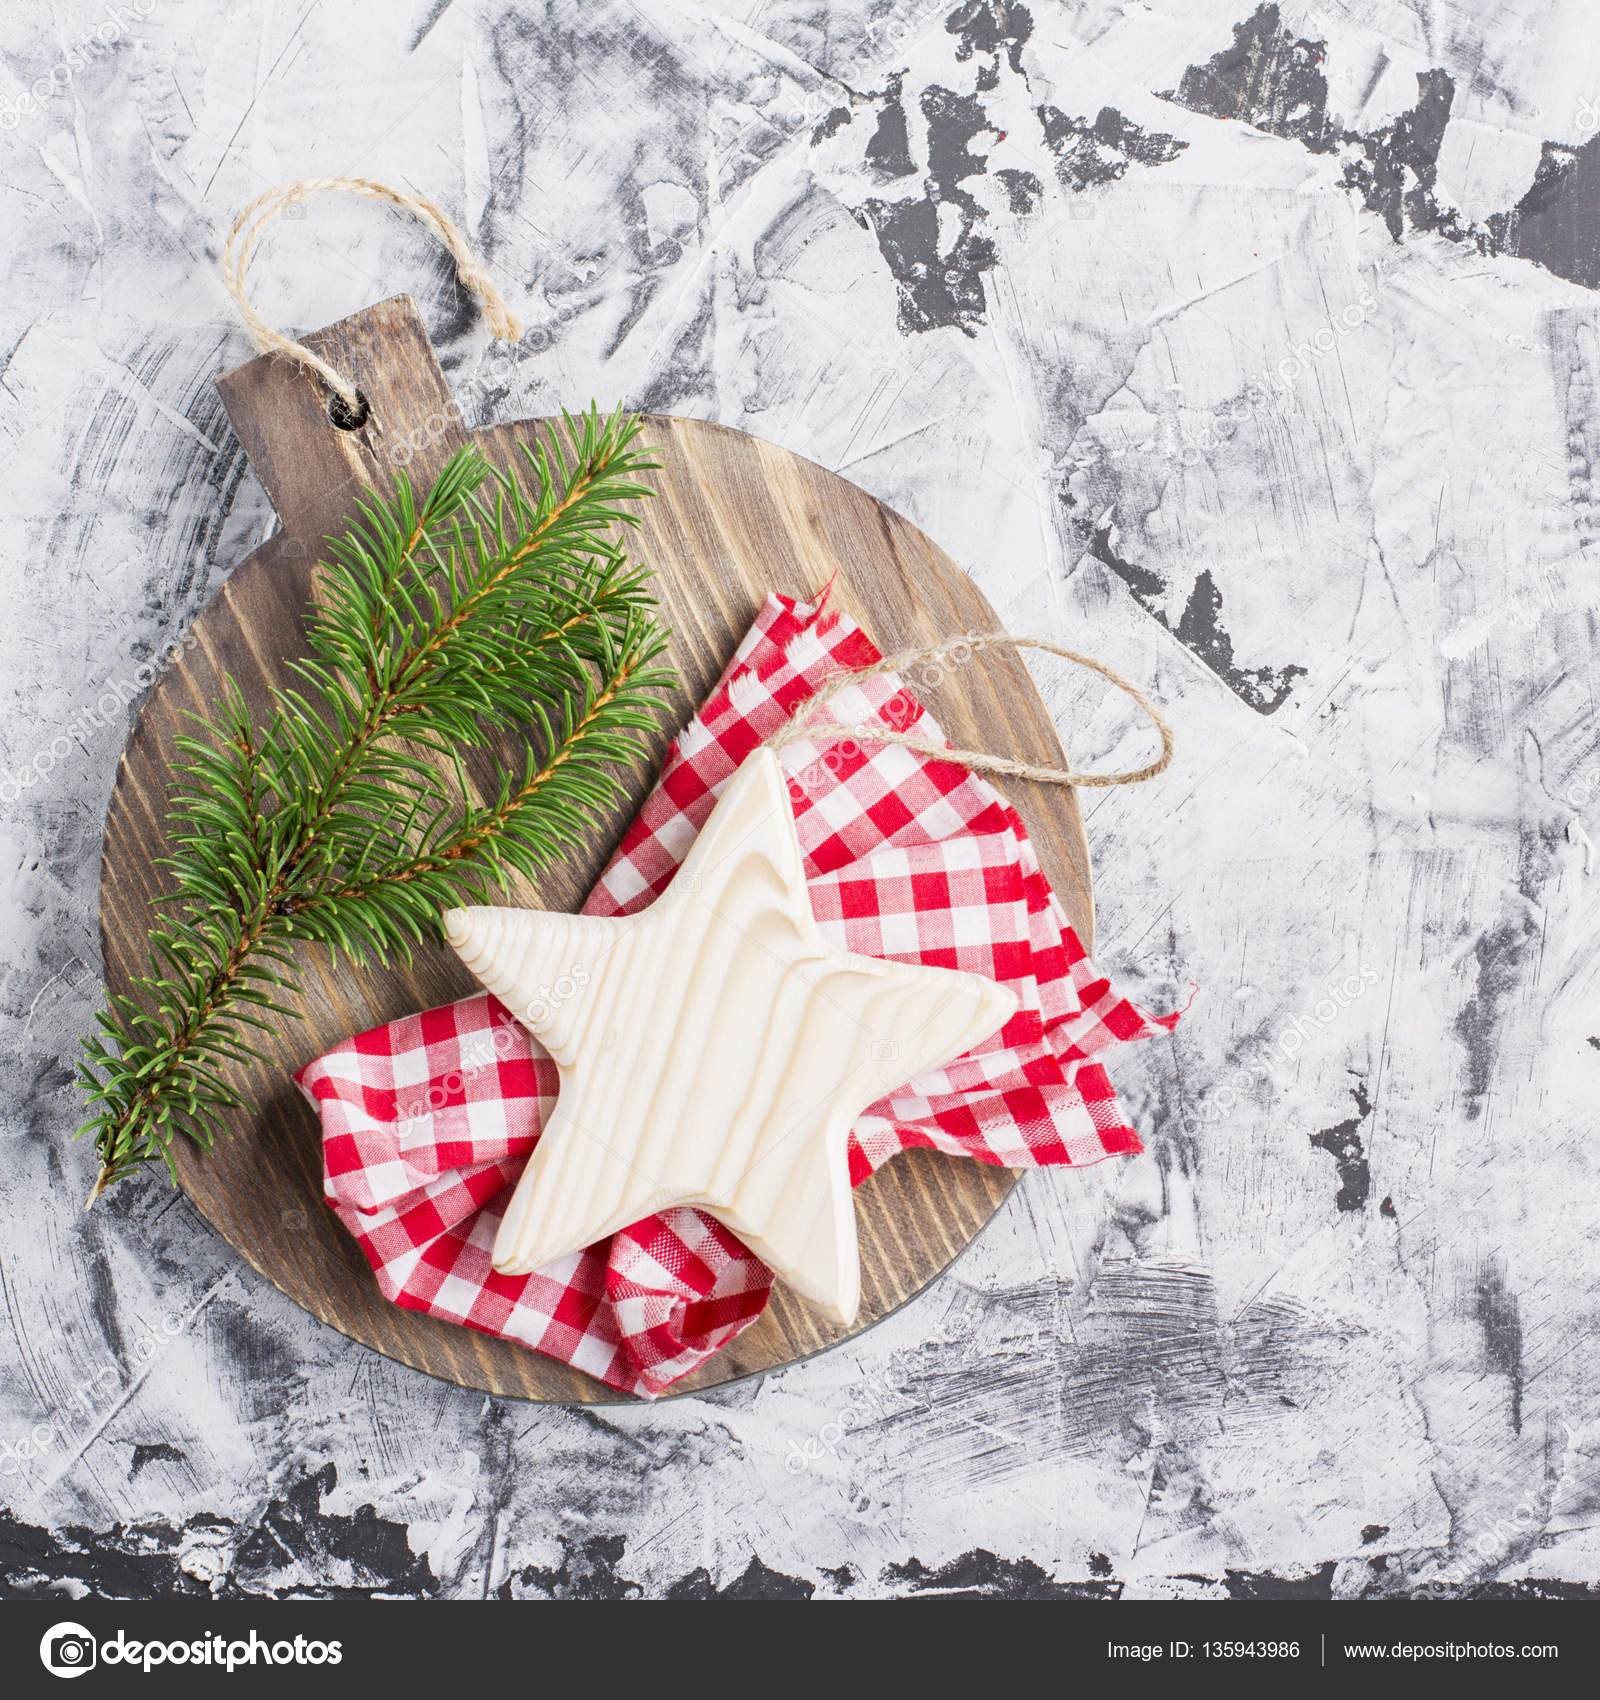 simple christmas background with a wooden board star and fir branch on light gray marble